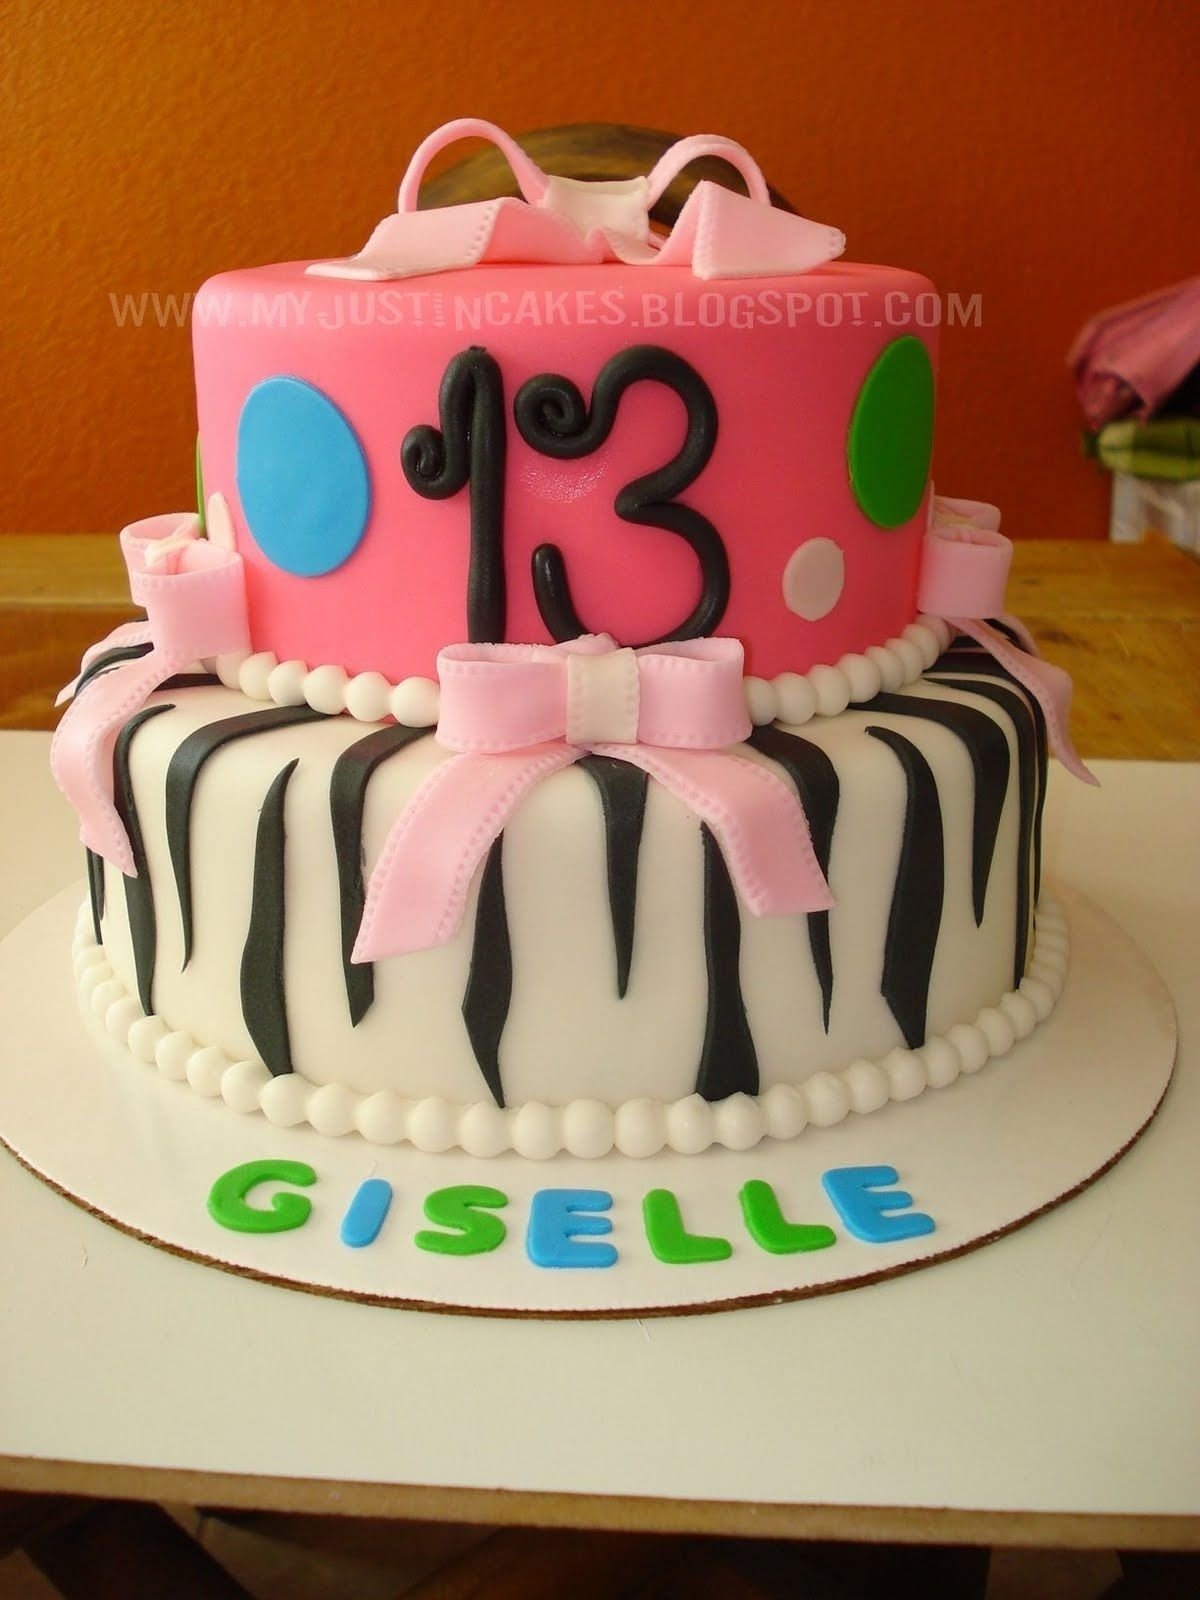 10 Spectacular Birthday Party Ideas For 13 Year Old Girl 5 year old birthday girl party ideas just in cakes 13 year old 1 2020